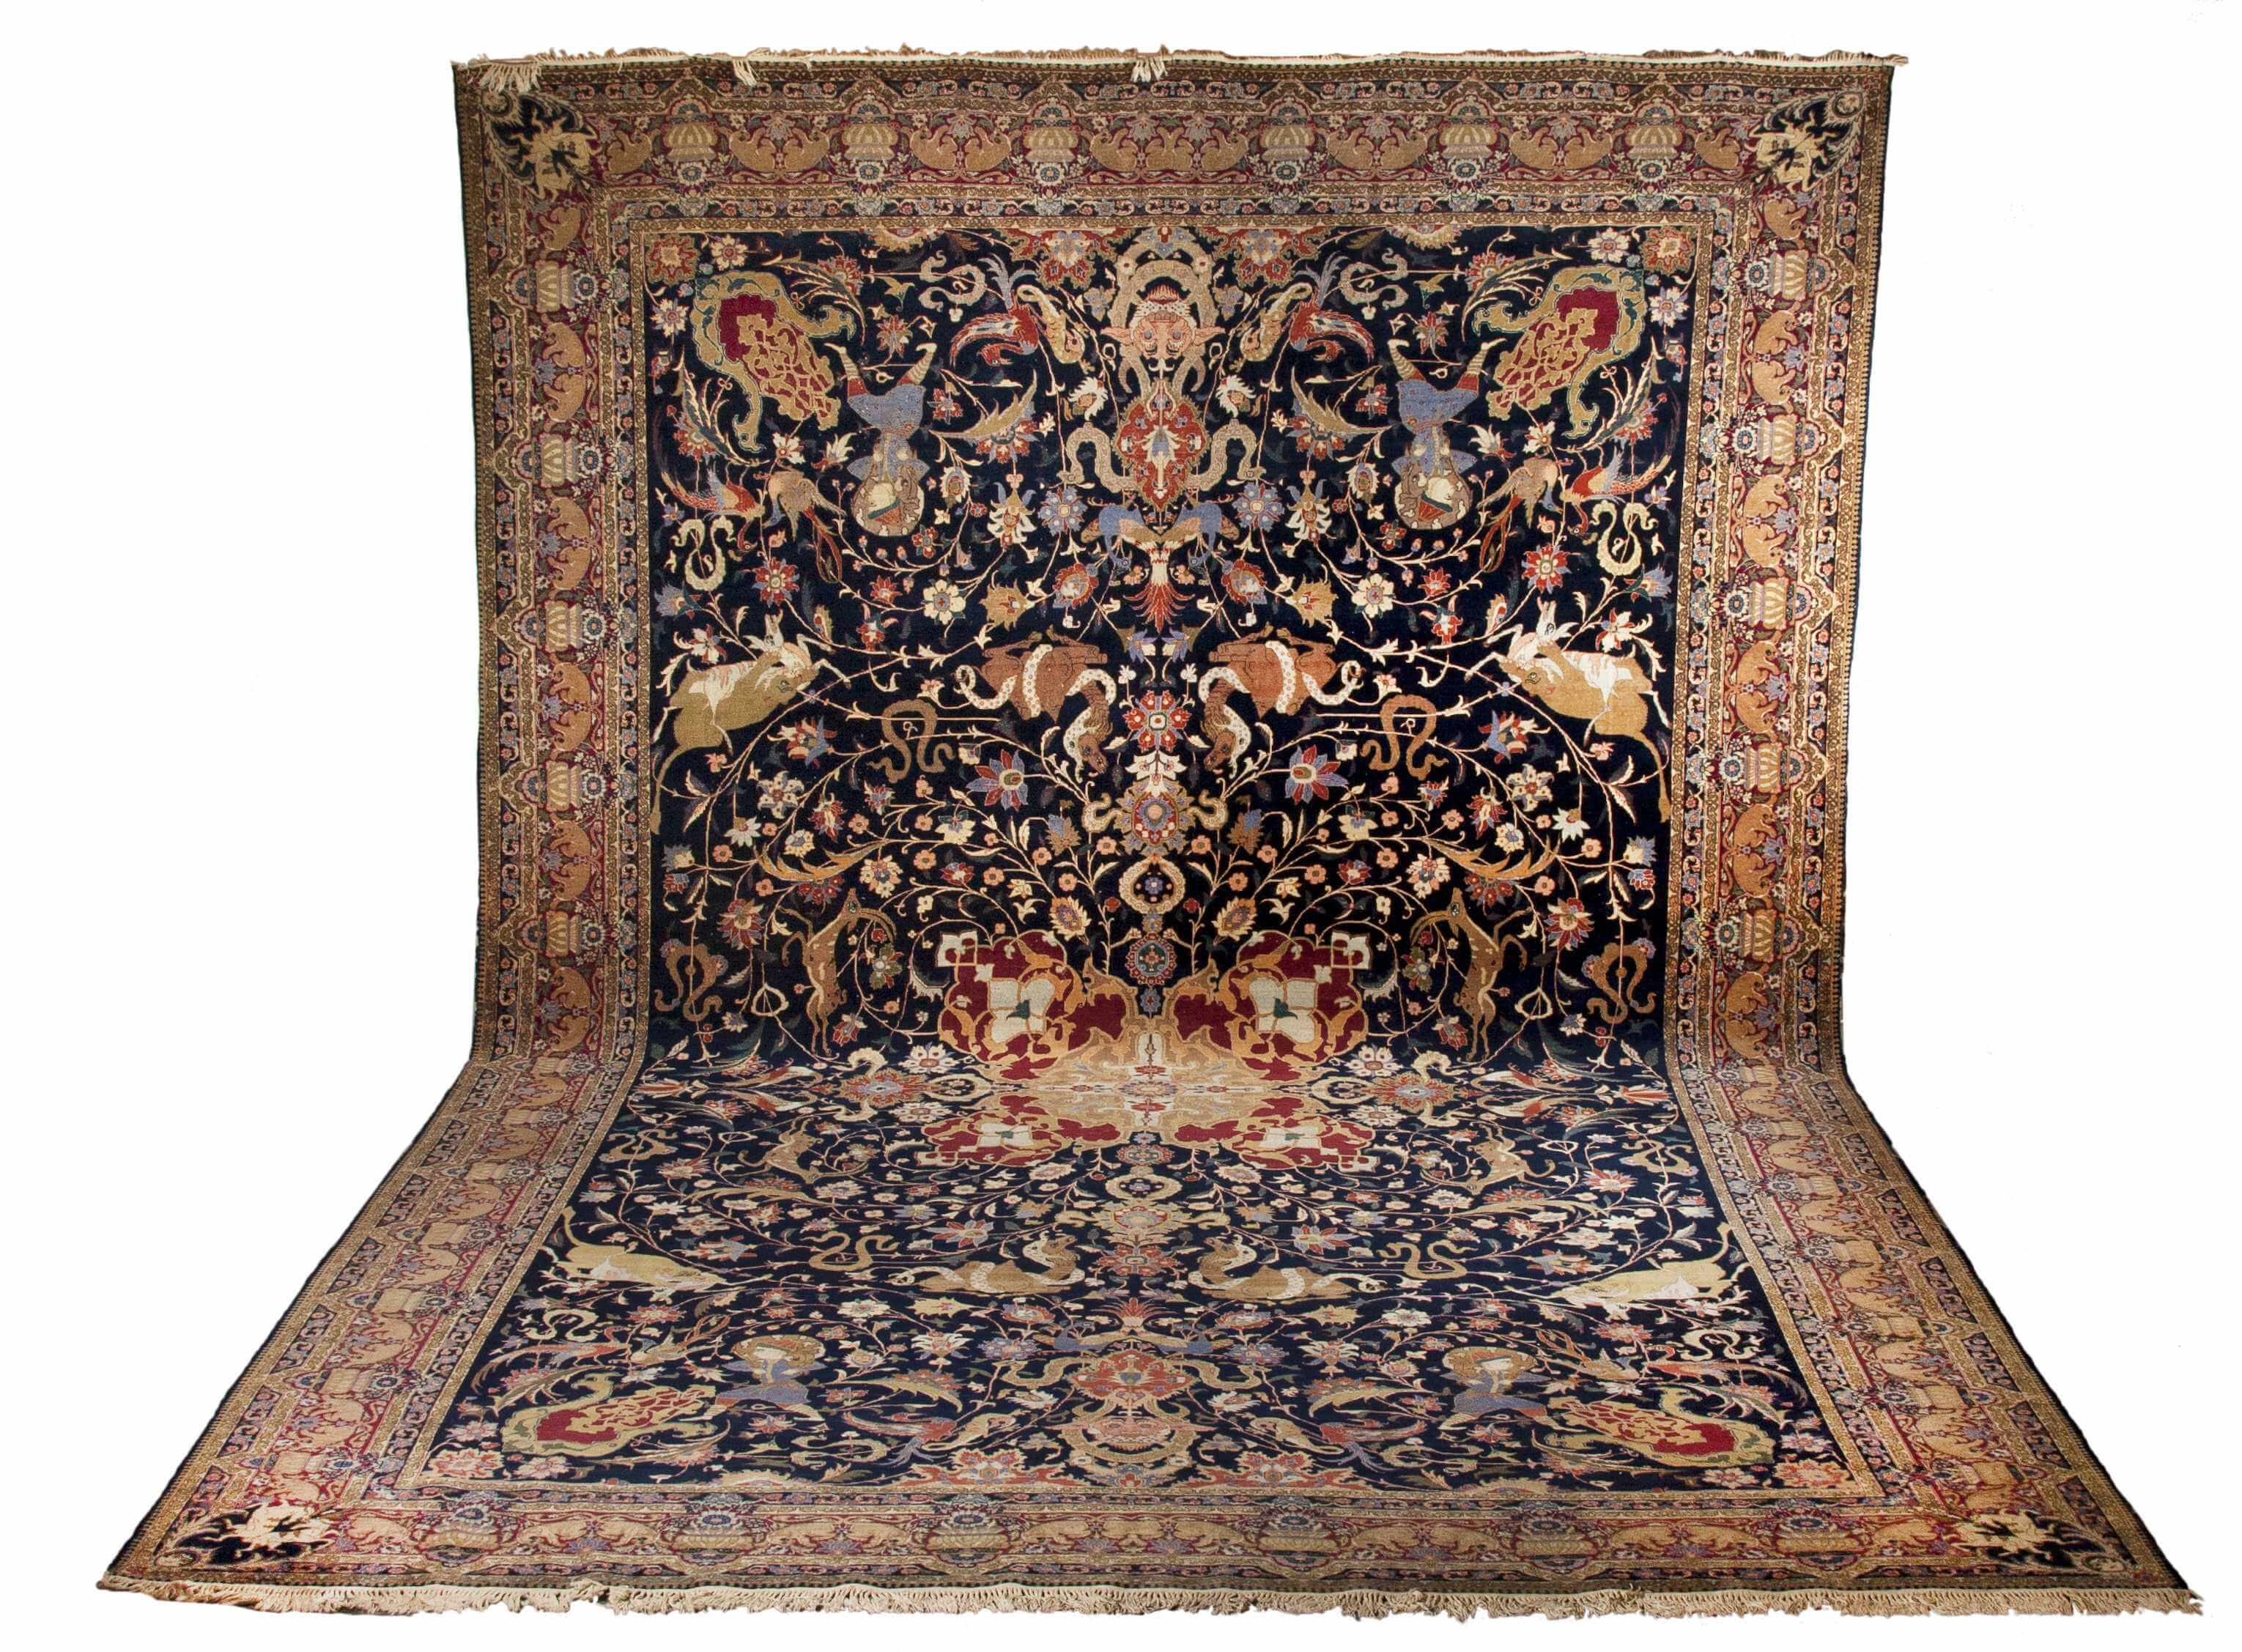 family stevens chem rugs oriental area services dry rug cleaners cleaning